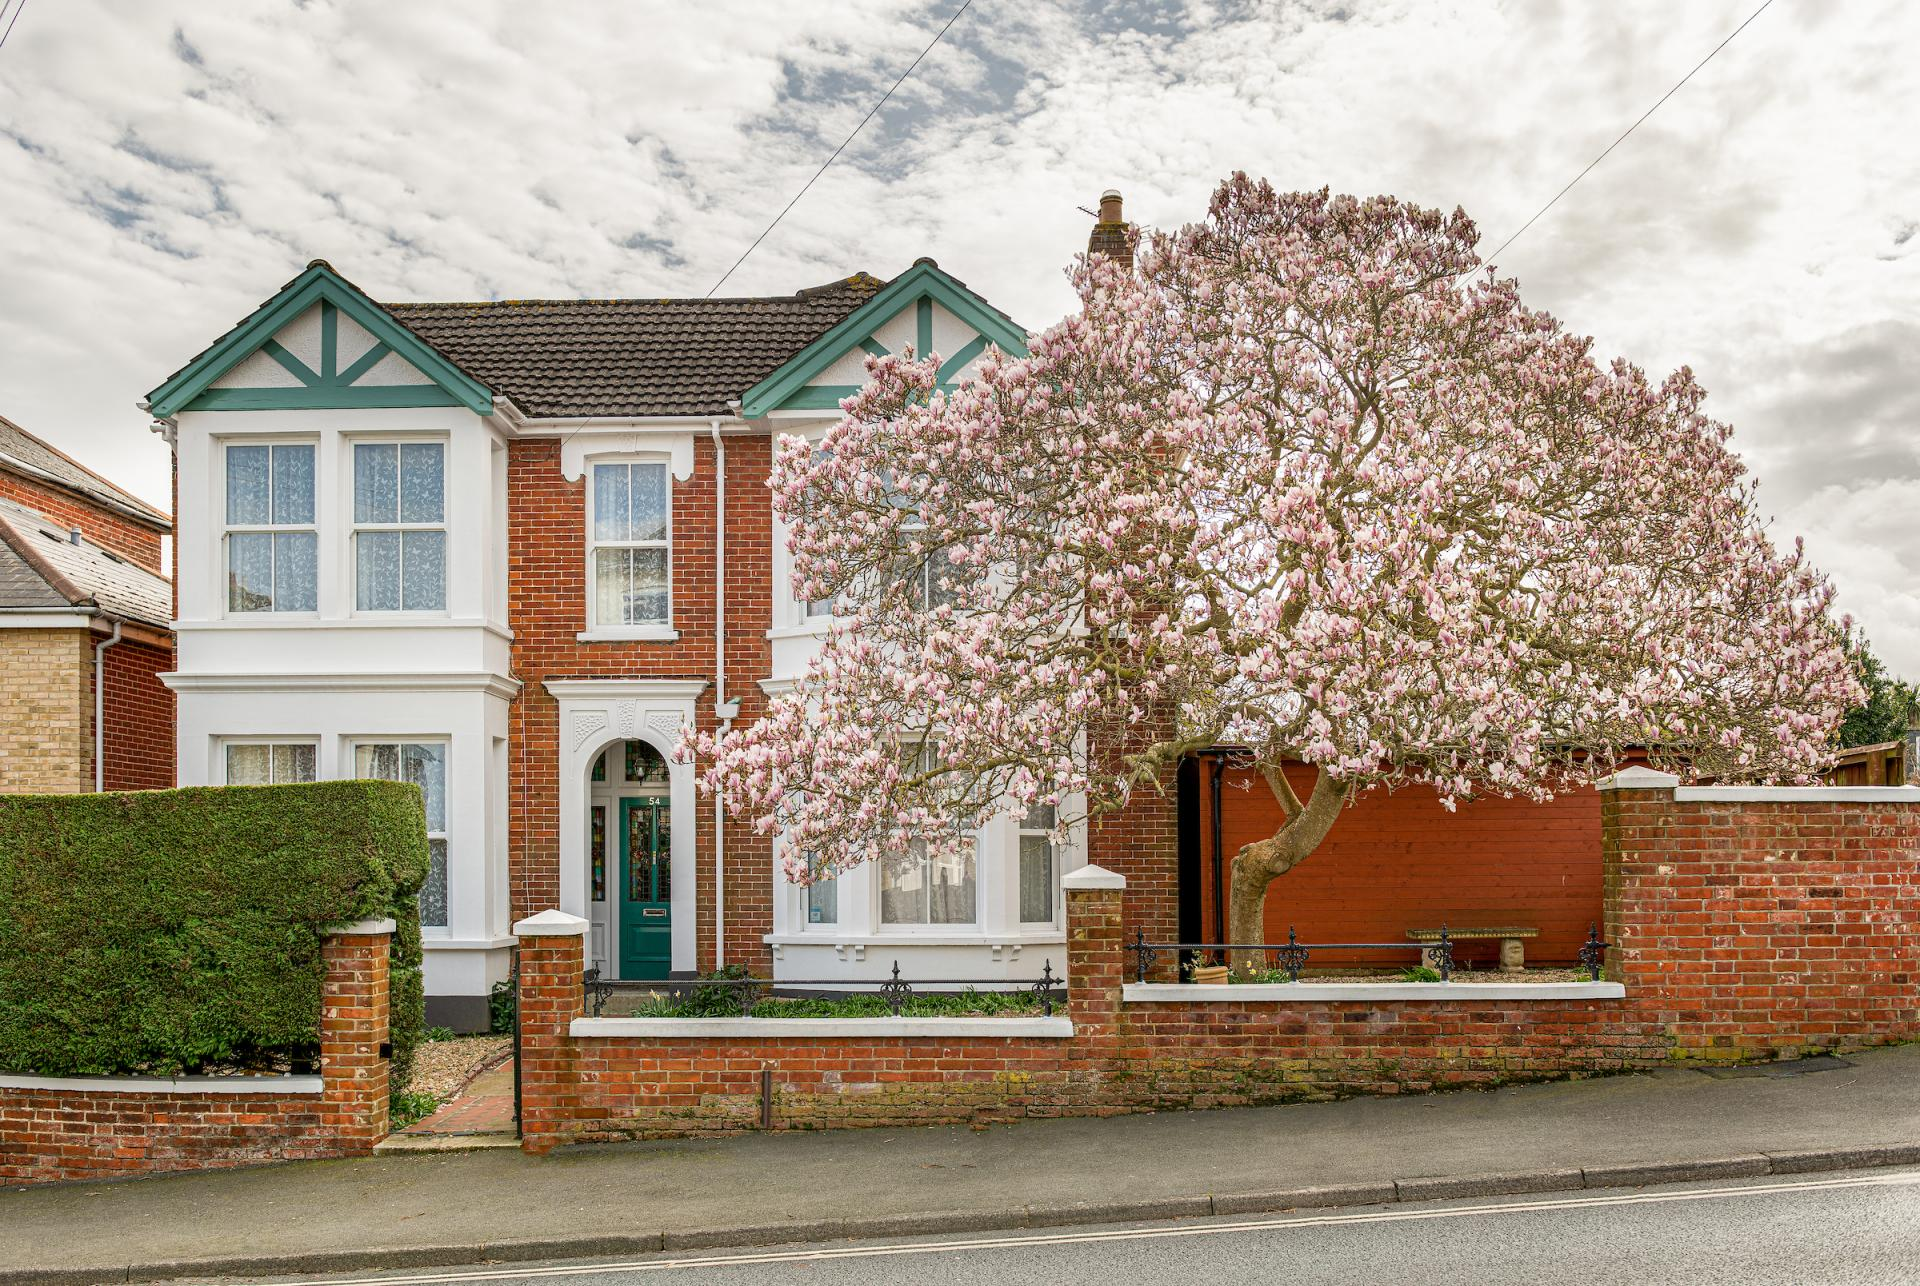 beautiful brick Victorian semi detached terrace house with pink blossom tree